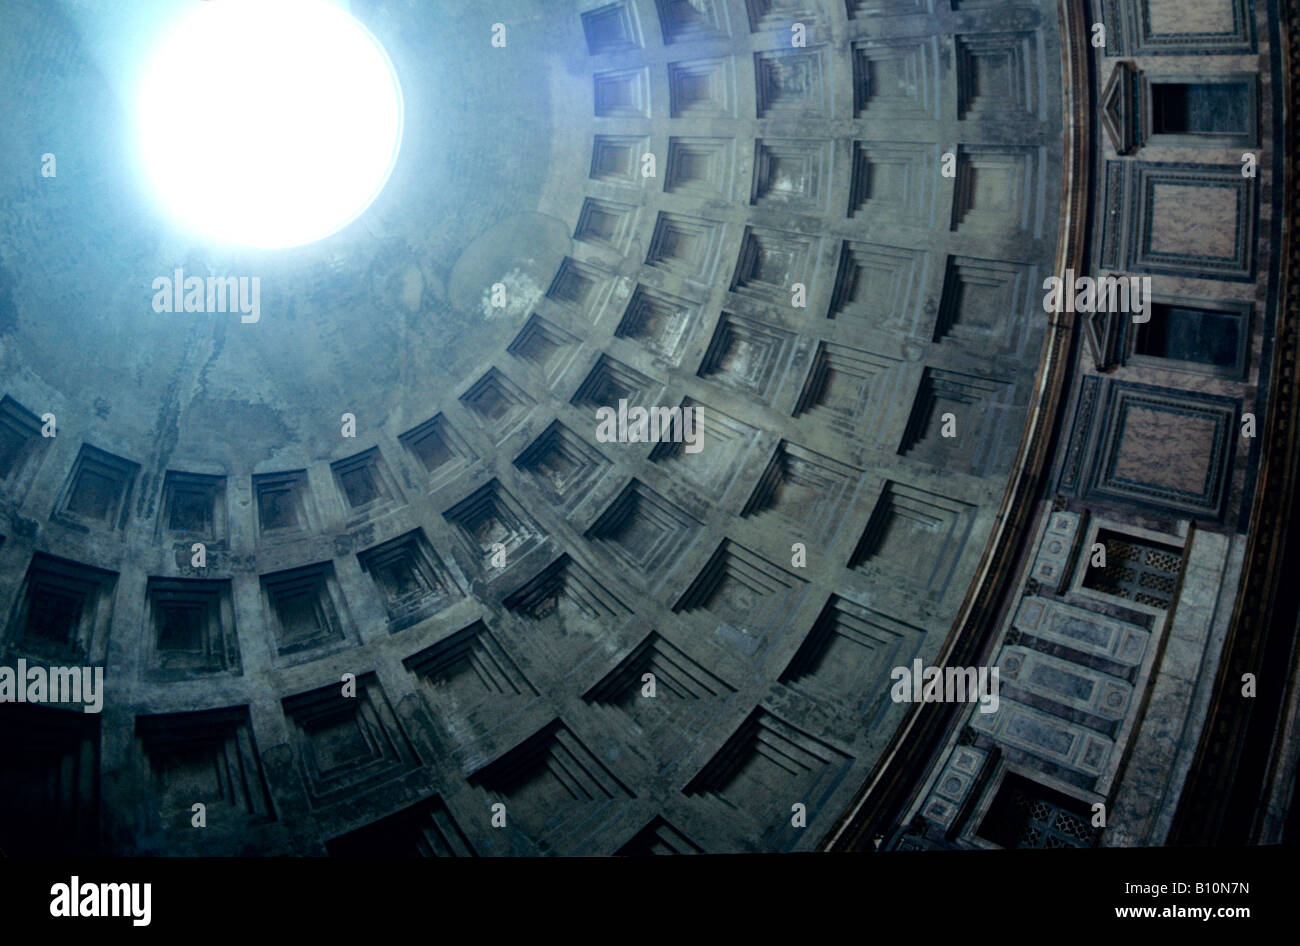 Pantheon dome interior 25 BC Rome Copyright! AAA Collection Ltd - Stock Image